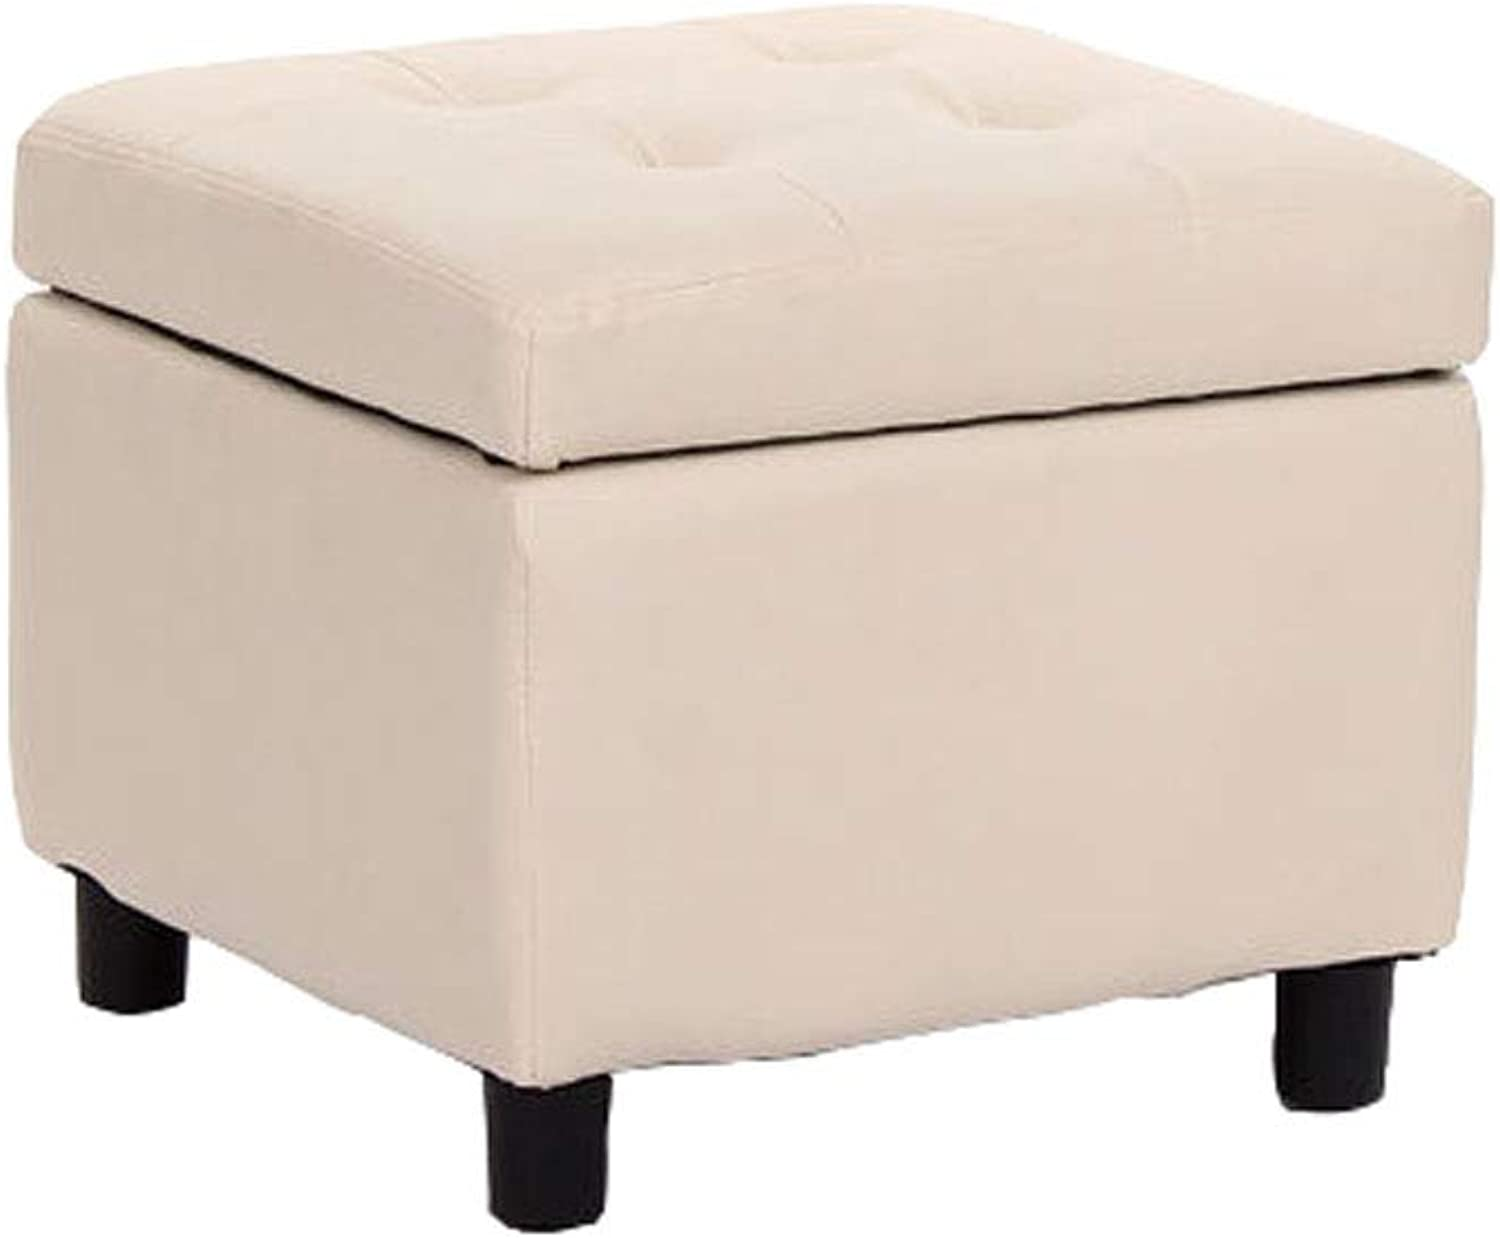 Living Room shoes Storage Stool Simple Bench Sofa Footrest shoes Stool (color   Beige)